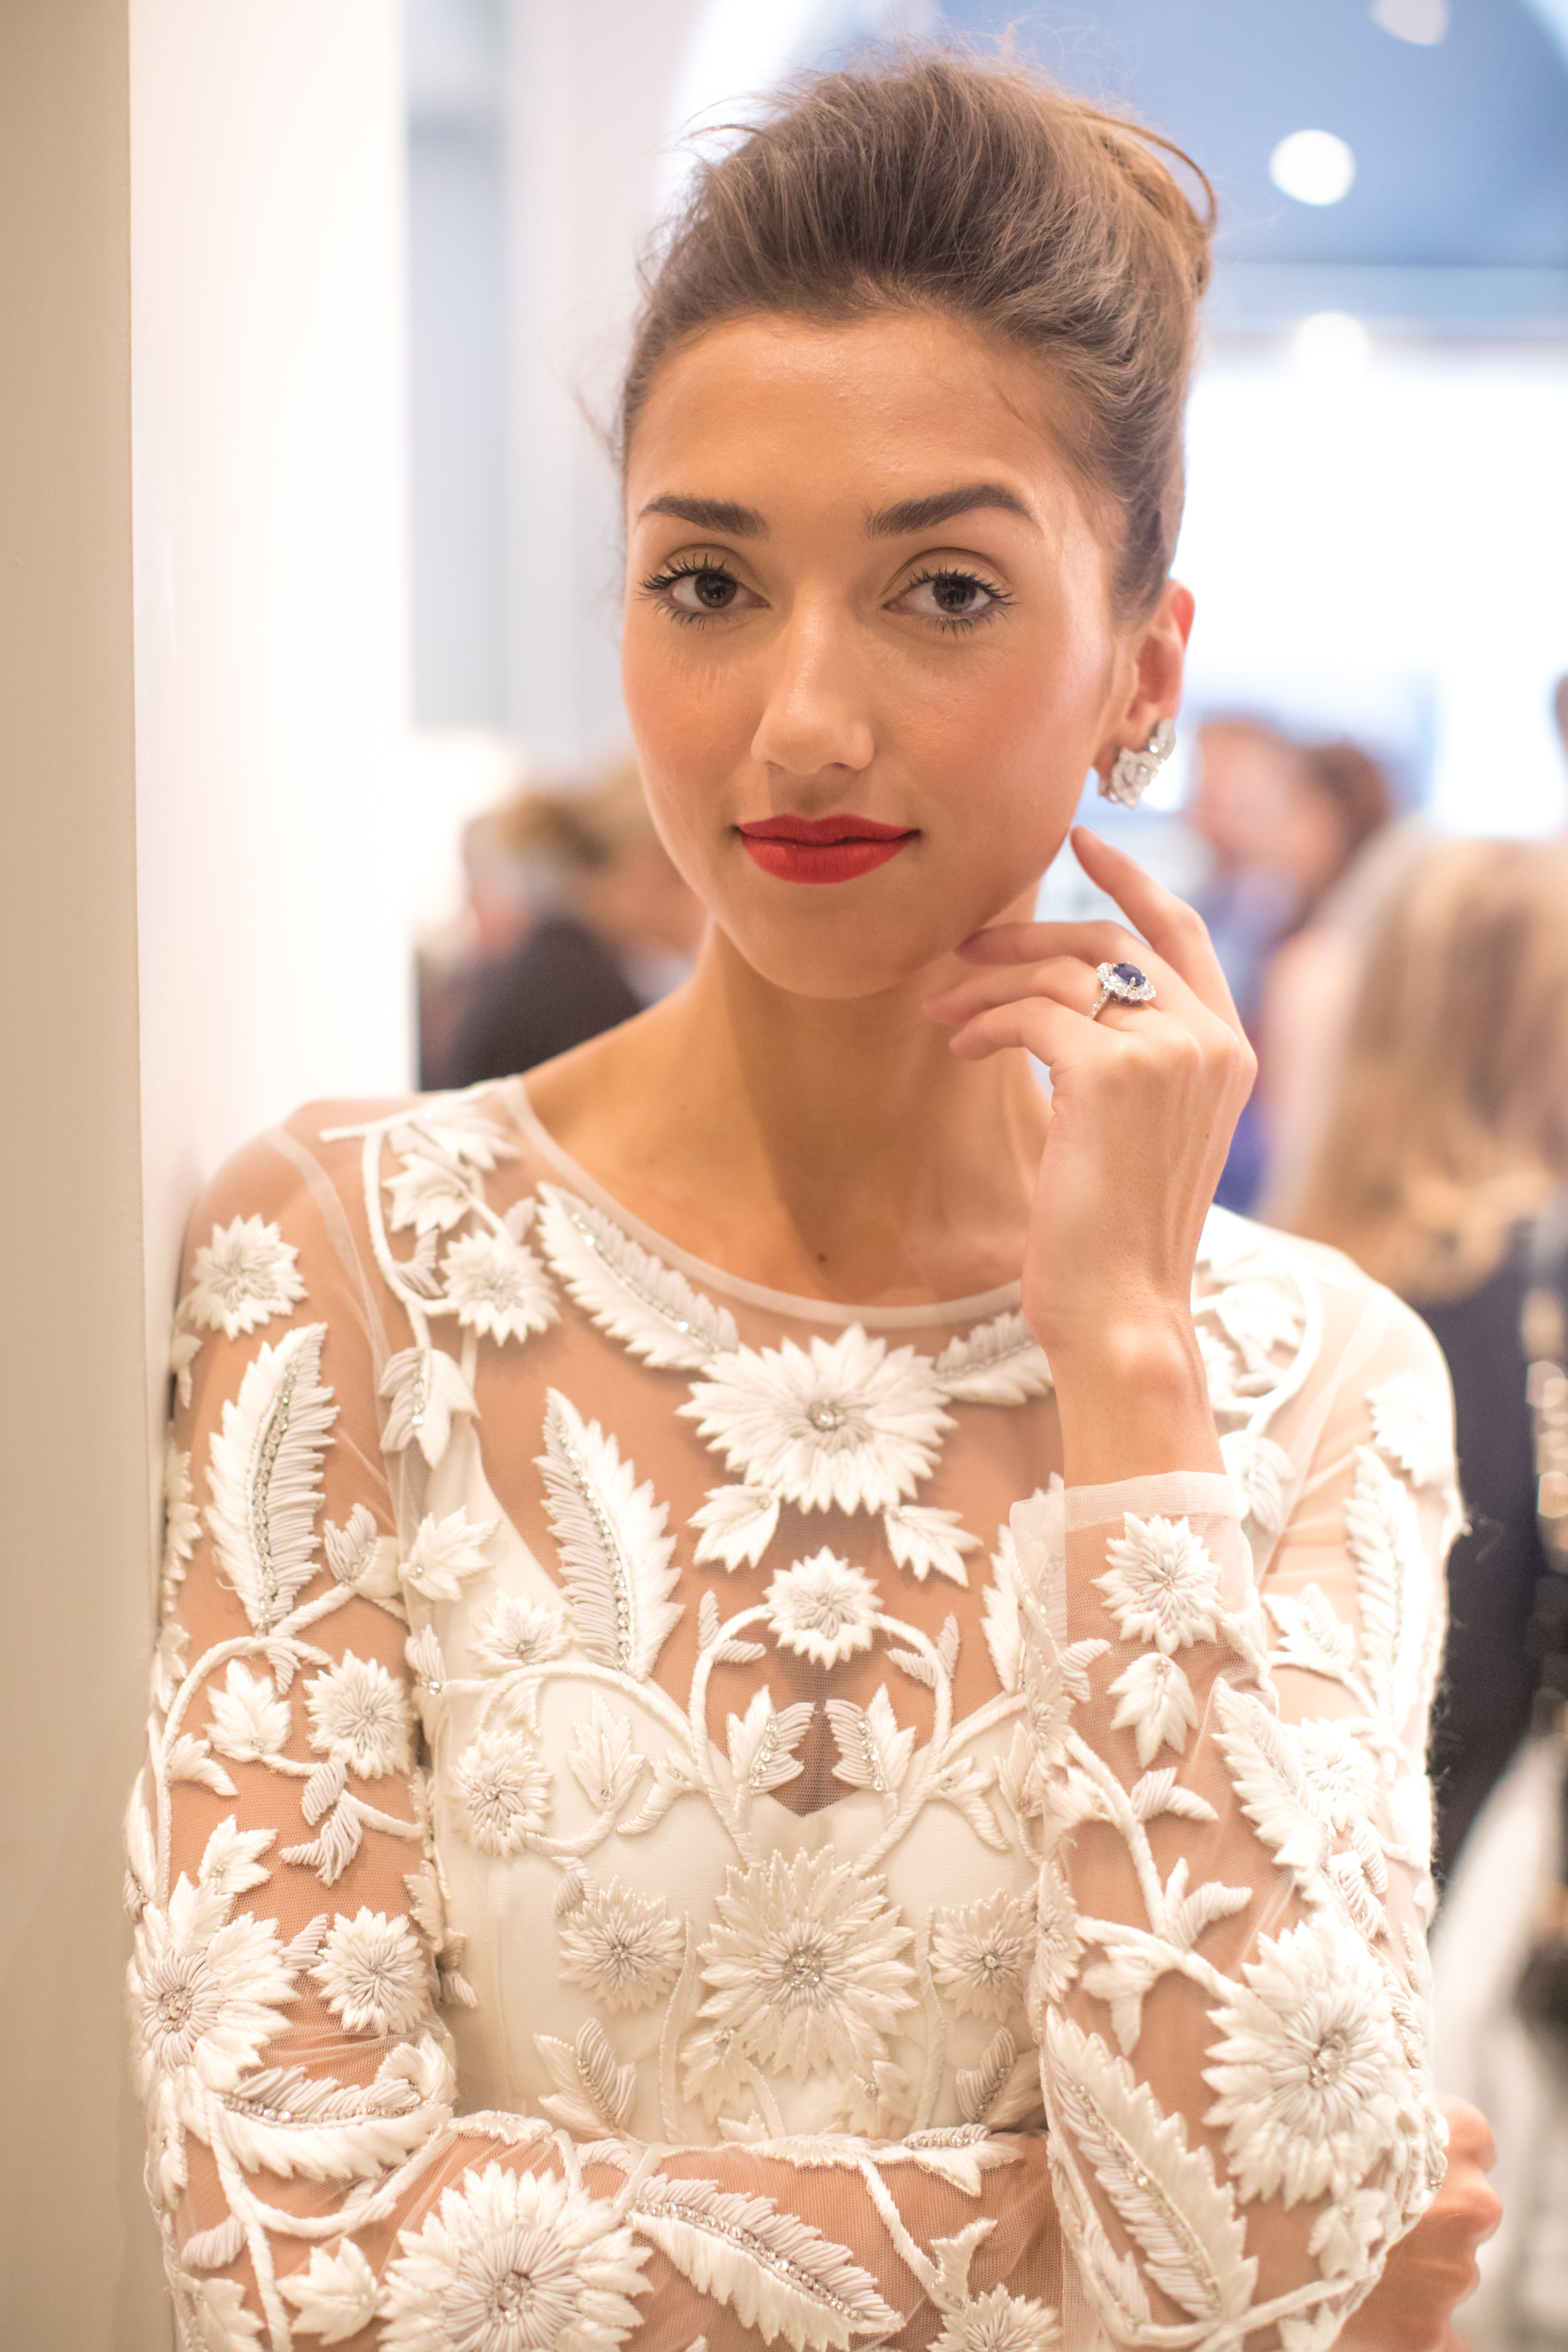 Halfpenny London wedding dresses at a Brides Magazine reader event with House of Garrard